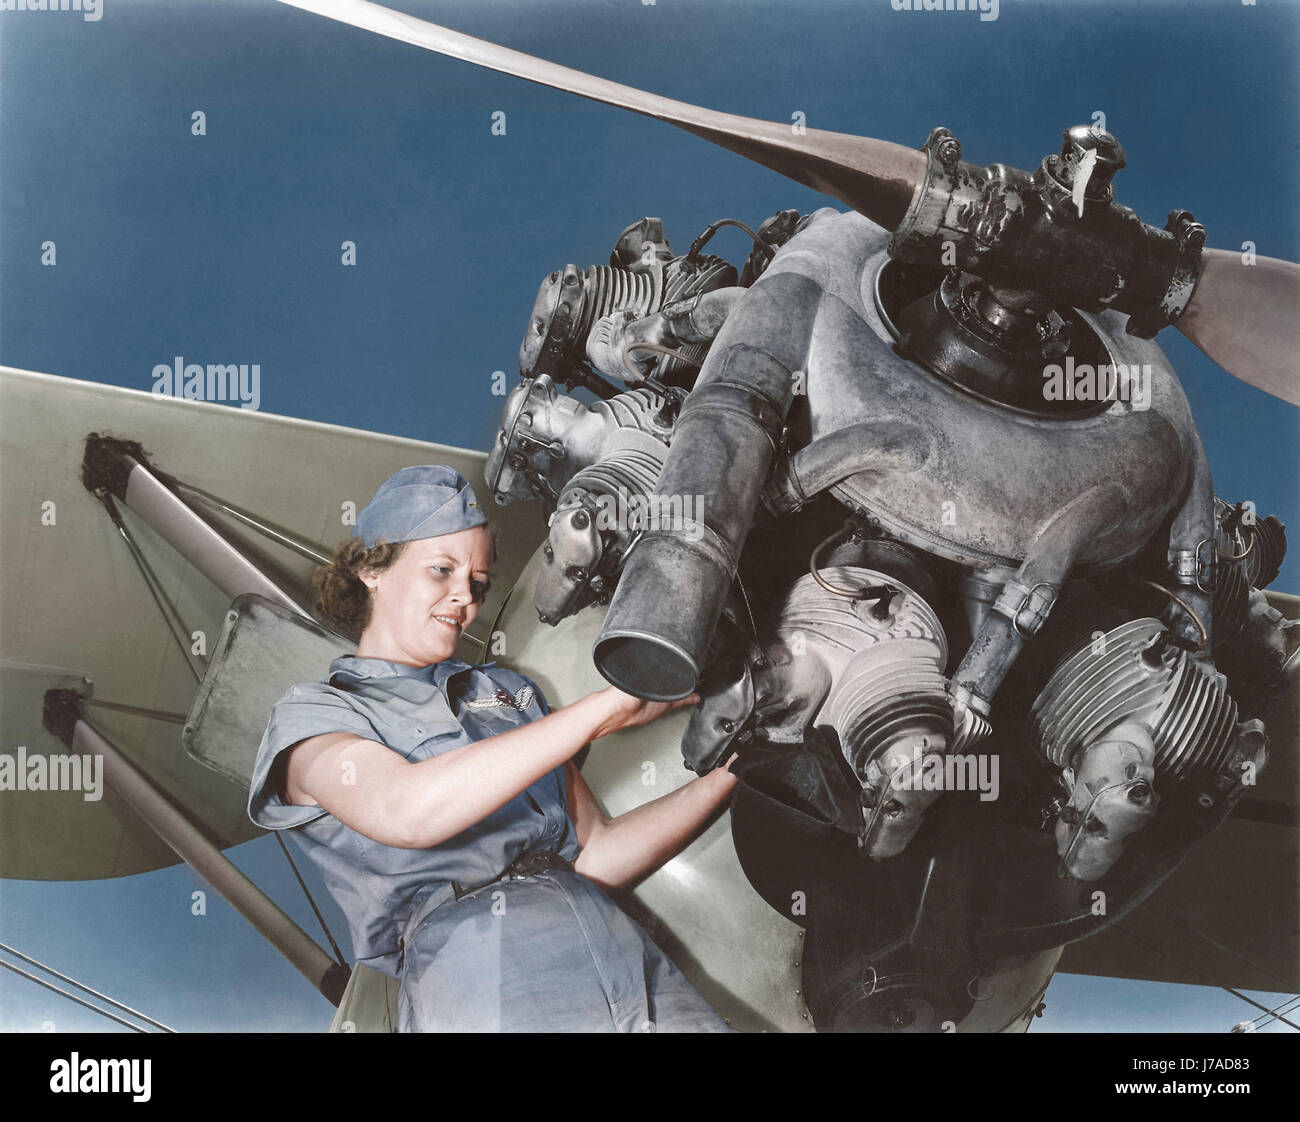 A 20 year old woman and expert aviation mechanic rebuilding an airplane engine. - Stock Image